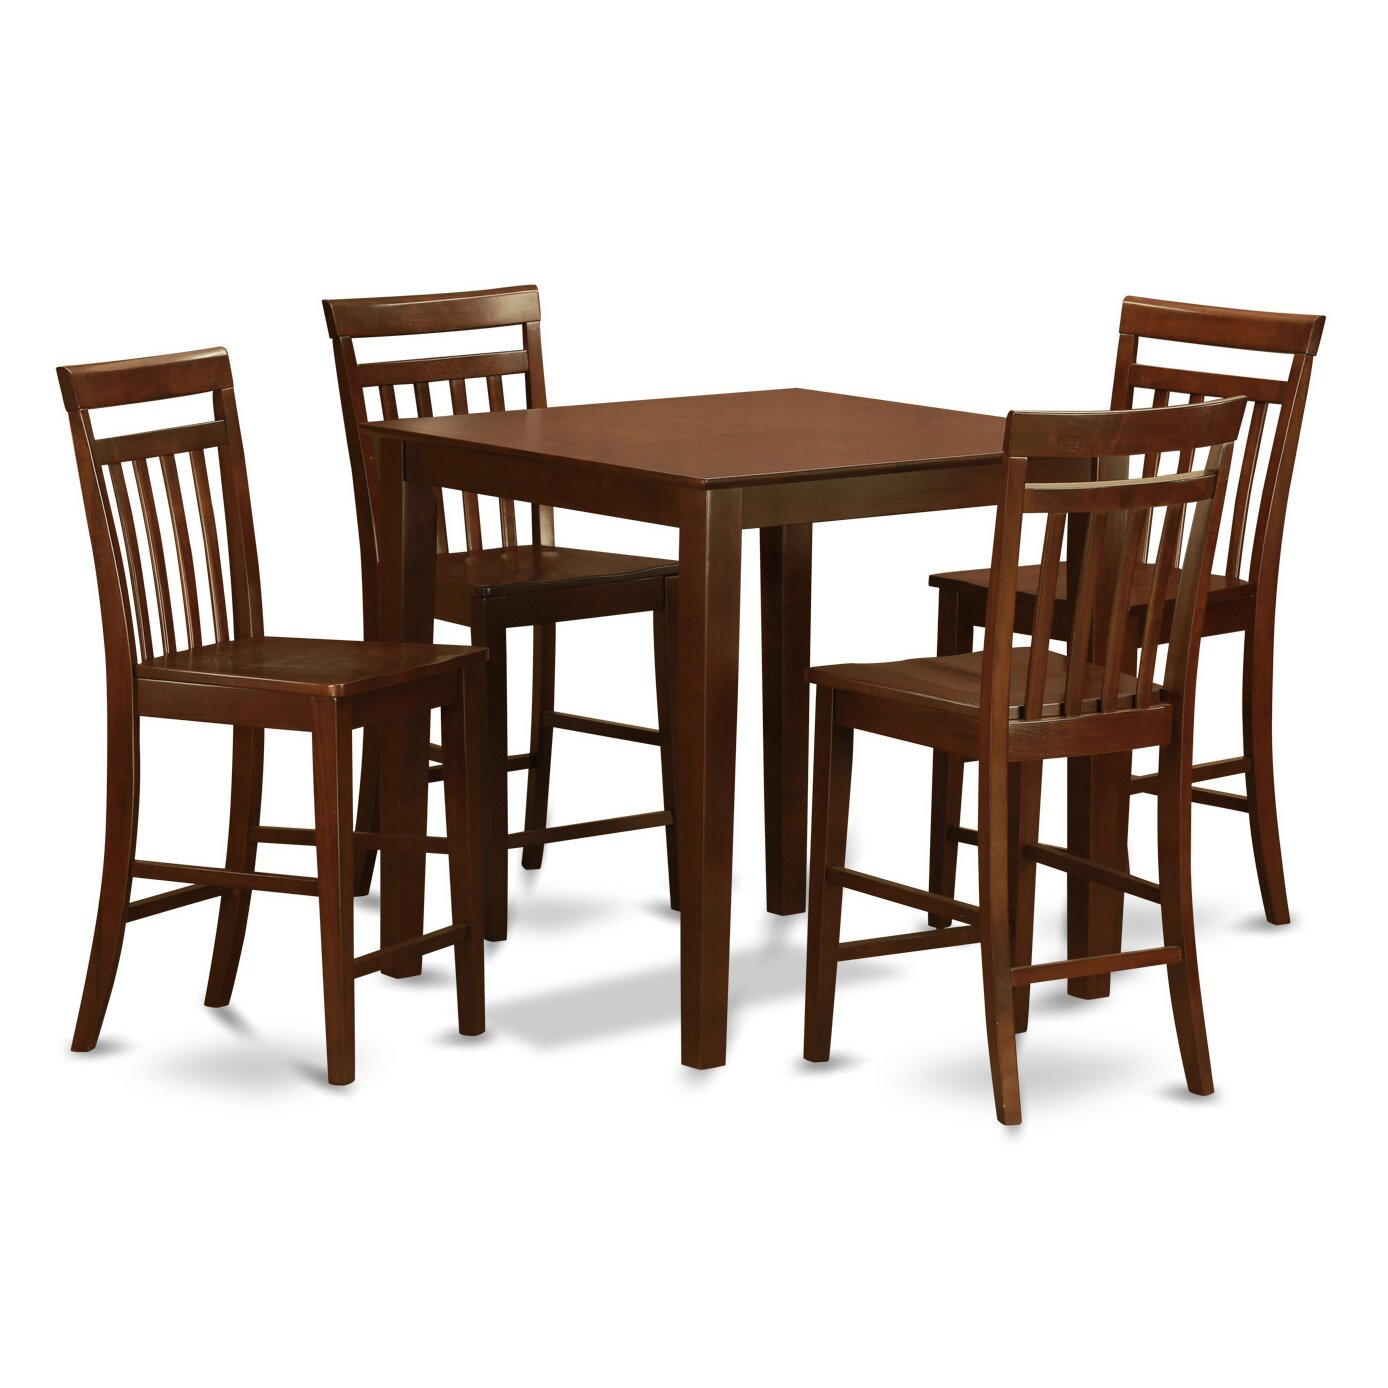 Counter Height Dining Room Table Sets East West Vernon 5 Piece Counter Height Pub Table Set